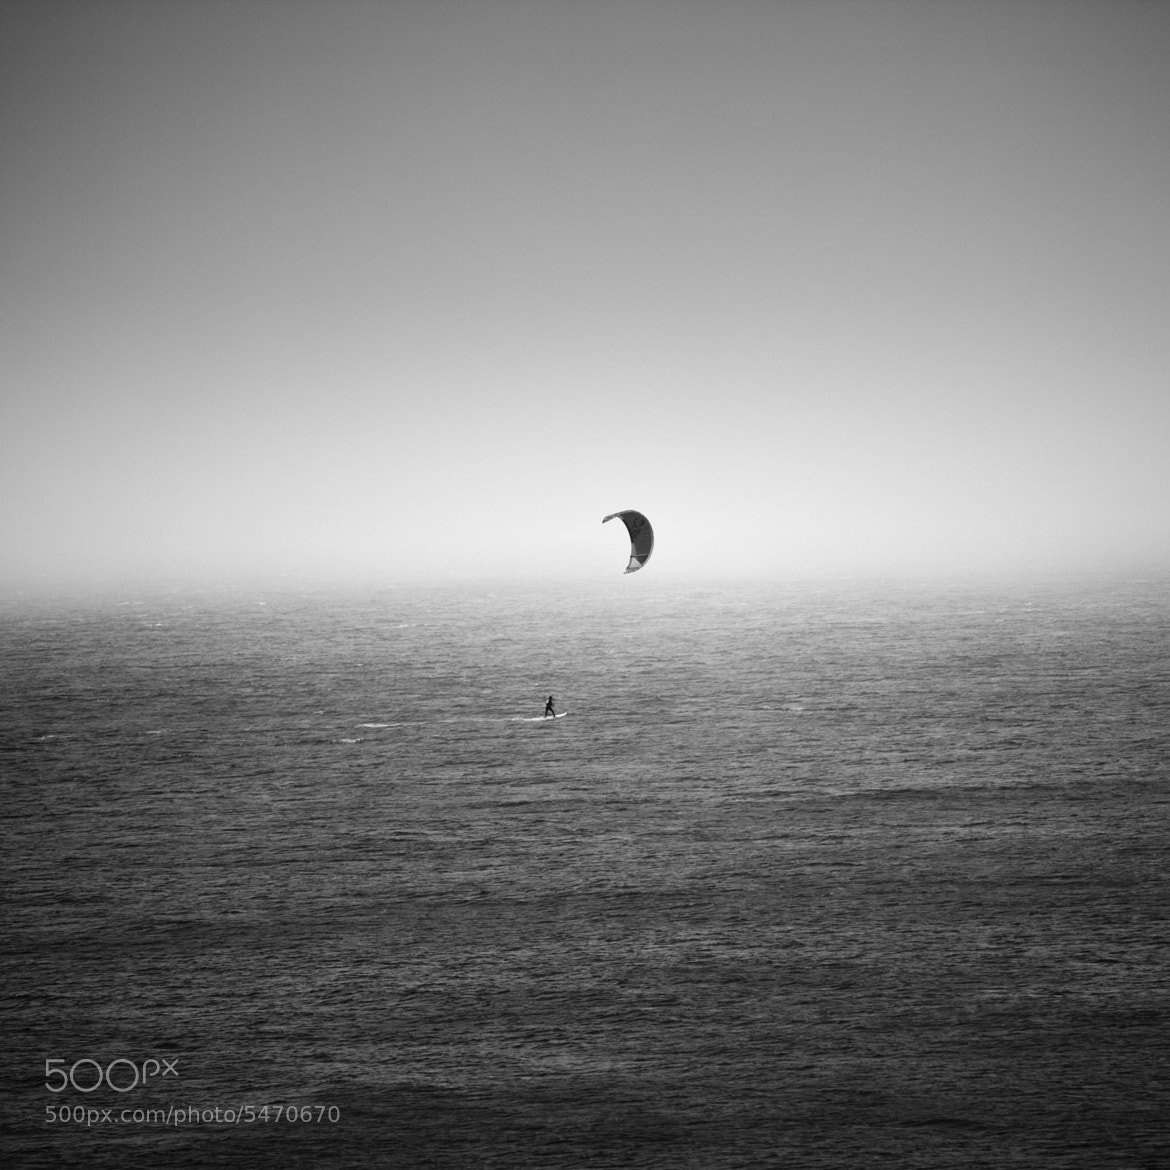 Photograph Spied Solitude 9 by Giuseppe Parisi on 500px